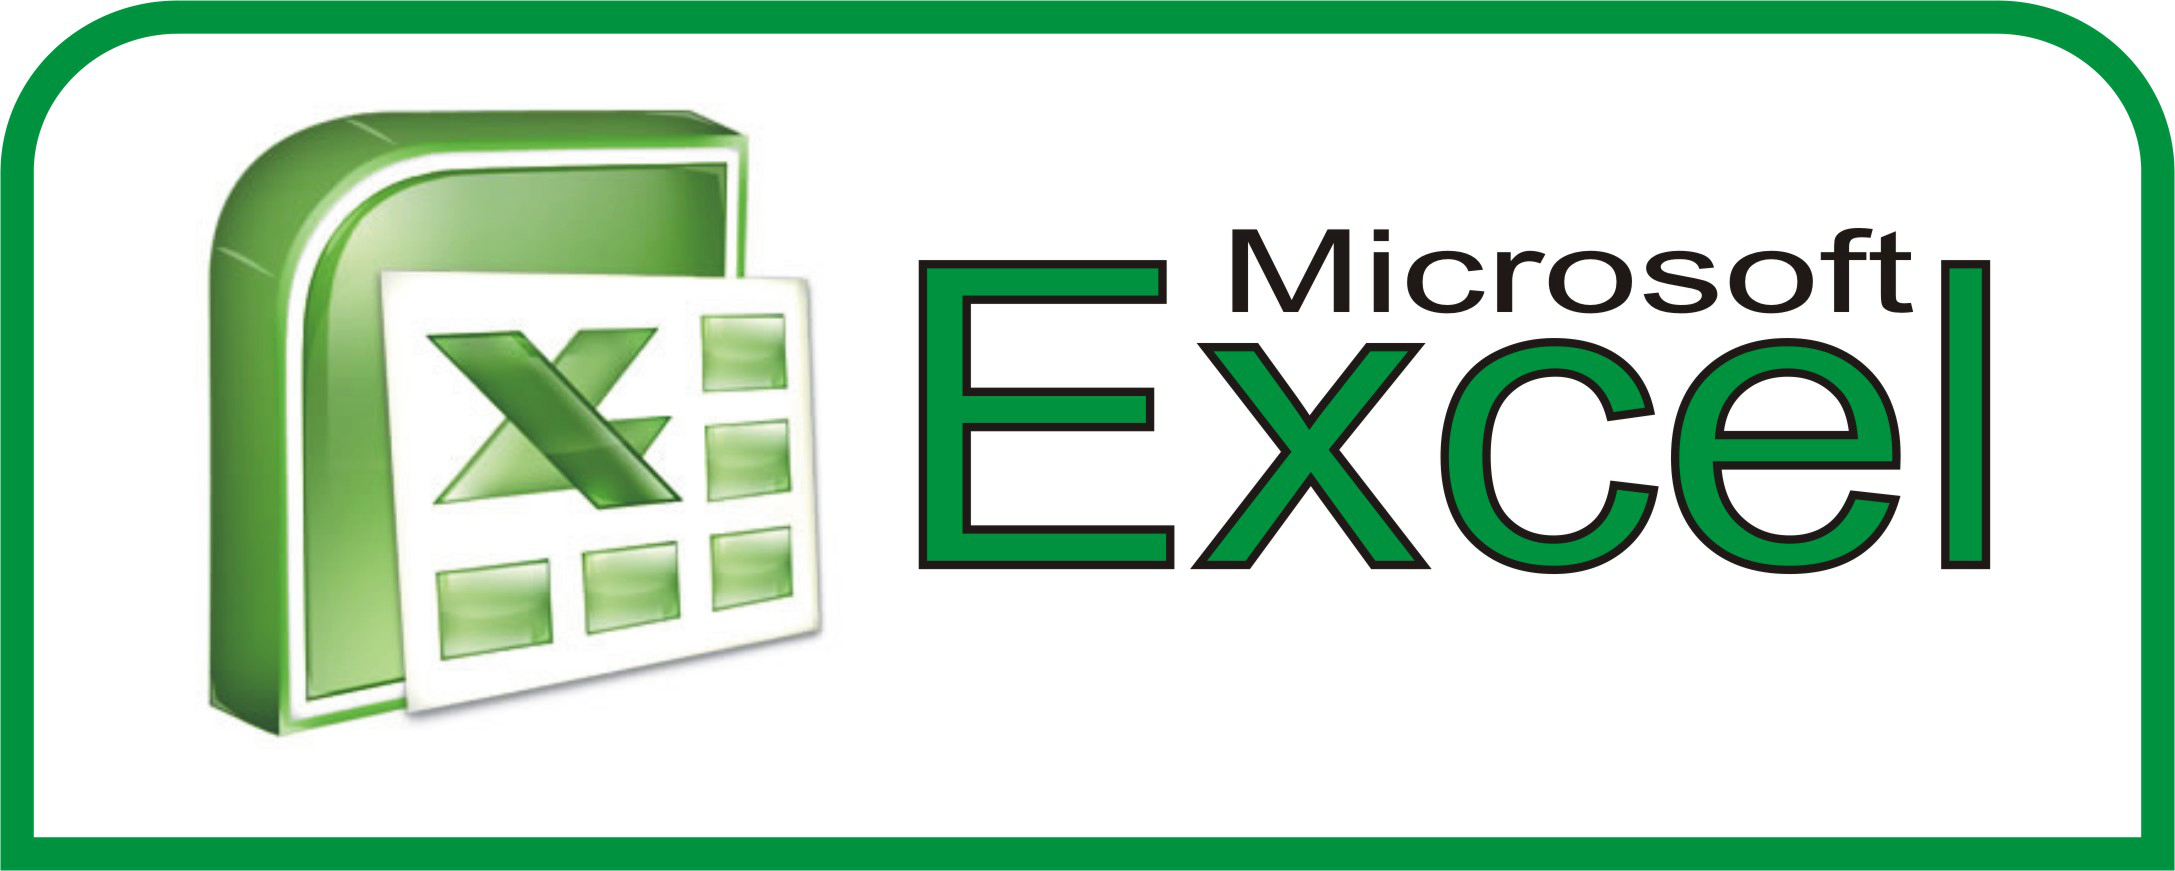 Ediblewildsus  Pleasant  Excel Shortcuts You Probably Didnt Know About  Techdissected With Licious Percentage Difference Excel Besides Microsoft Excel Logo Furthermore Excel Freeze Row And Column With Archaic How To Group Data In Excel Also Mode In Excel In Addition Making A Pie Chart In Excel And Unhide Multiple Sheets In Excel As Well As Calculate Standard Deviation Excel Additionally Excel Len Function From Techdissectedcom With Ediblewildsus  Licious  Excel Shortcuts You Probably Didnt Know About  Techdissected With Archaic Percentage Difference Excel Besides Microsoft Excel Logo Furthermore Excel Freeze Row And Column And Pleasant How To Group Data In Excel Also Mode In Excel In Addition Making A Pie Chart In Excel From Techdissectedcom